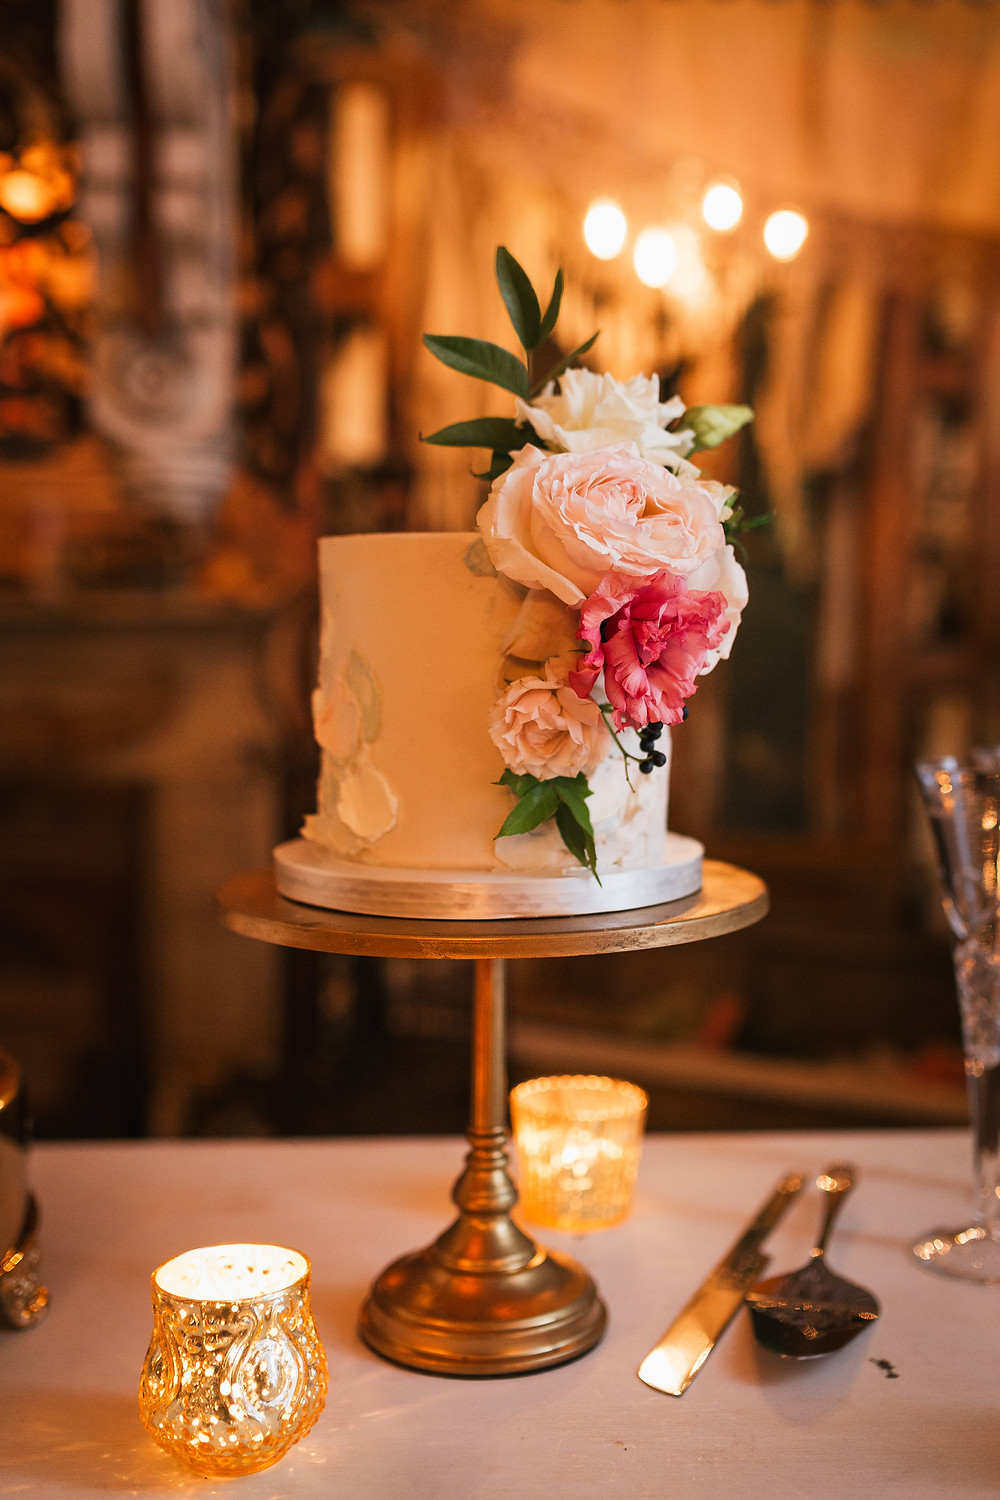 Lovegood Wedding & Event Rentals, New Orleans Vintage Rental Company for Corporate, Parties, and Weddings | Lounge Furniture in NOLA, Specialty Rentals, Decor across the Southeast, Old Warehouse with Wedding Cakes, Florals and Candles